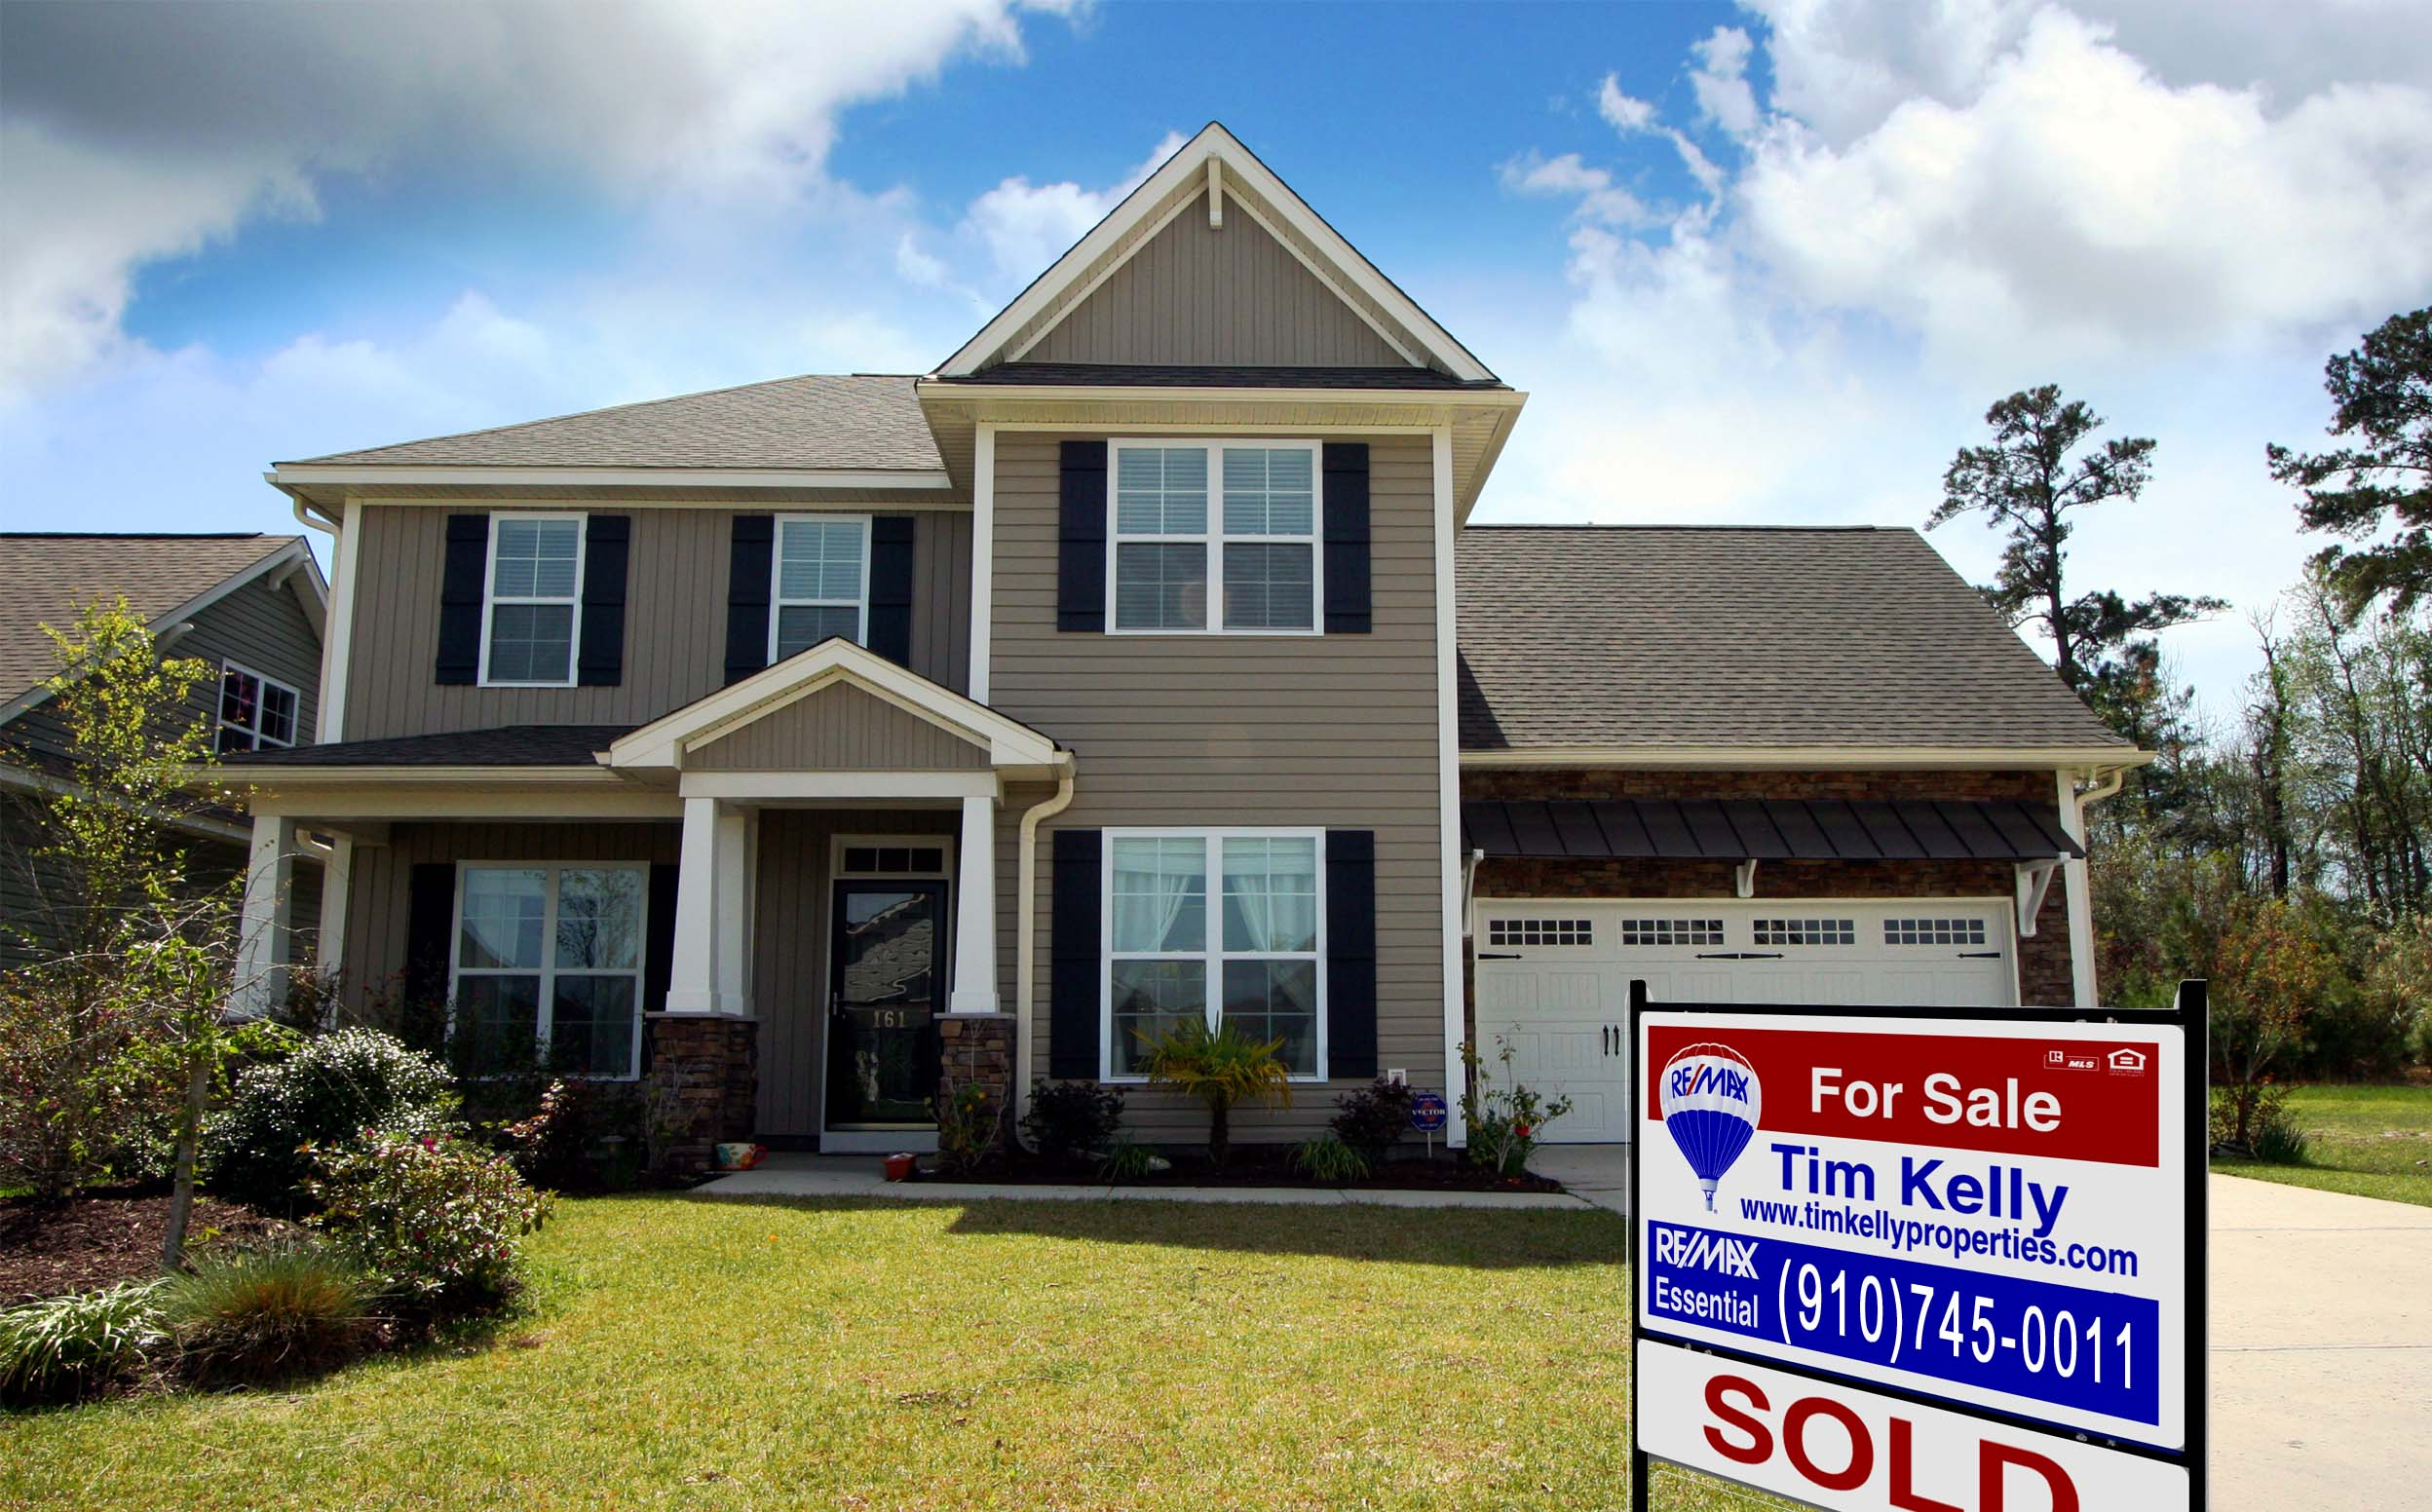 Home sold in Wedgewood